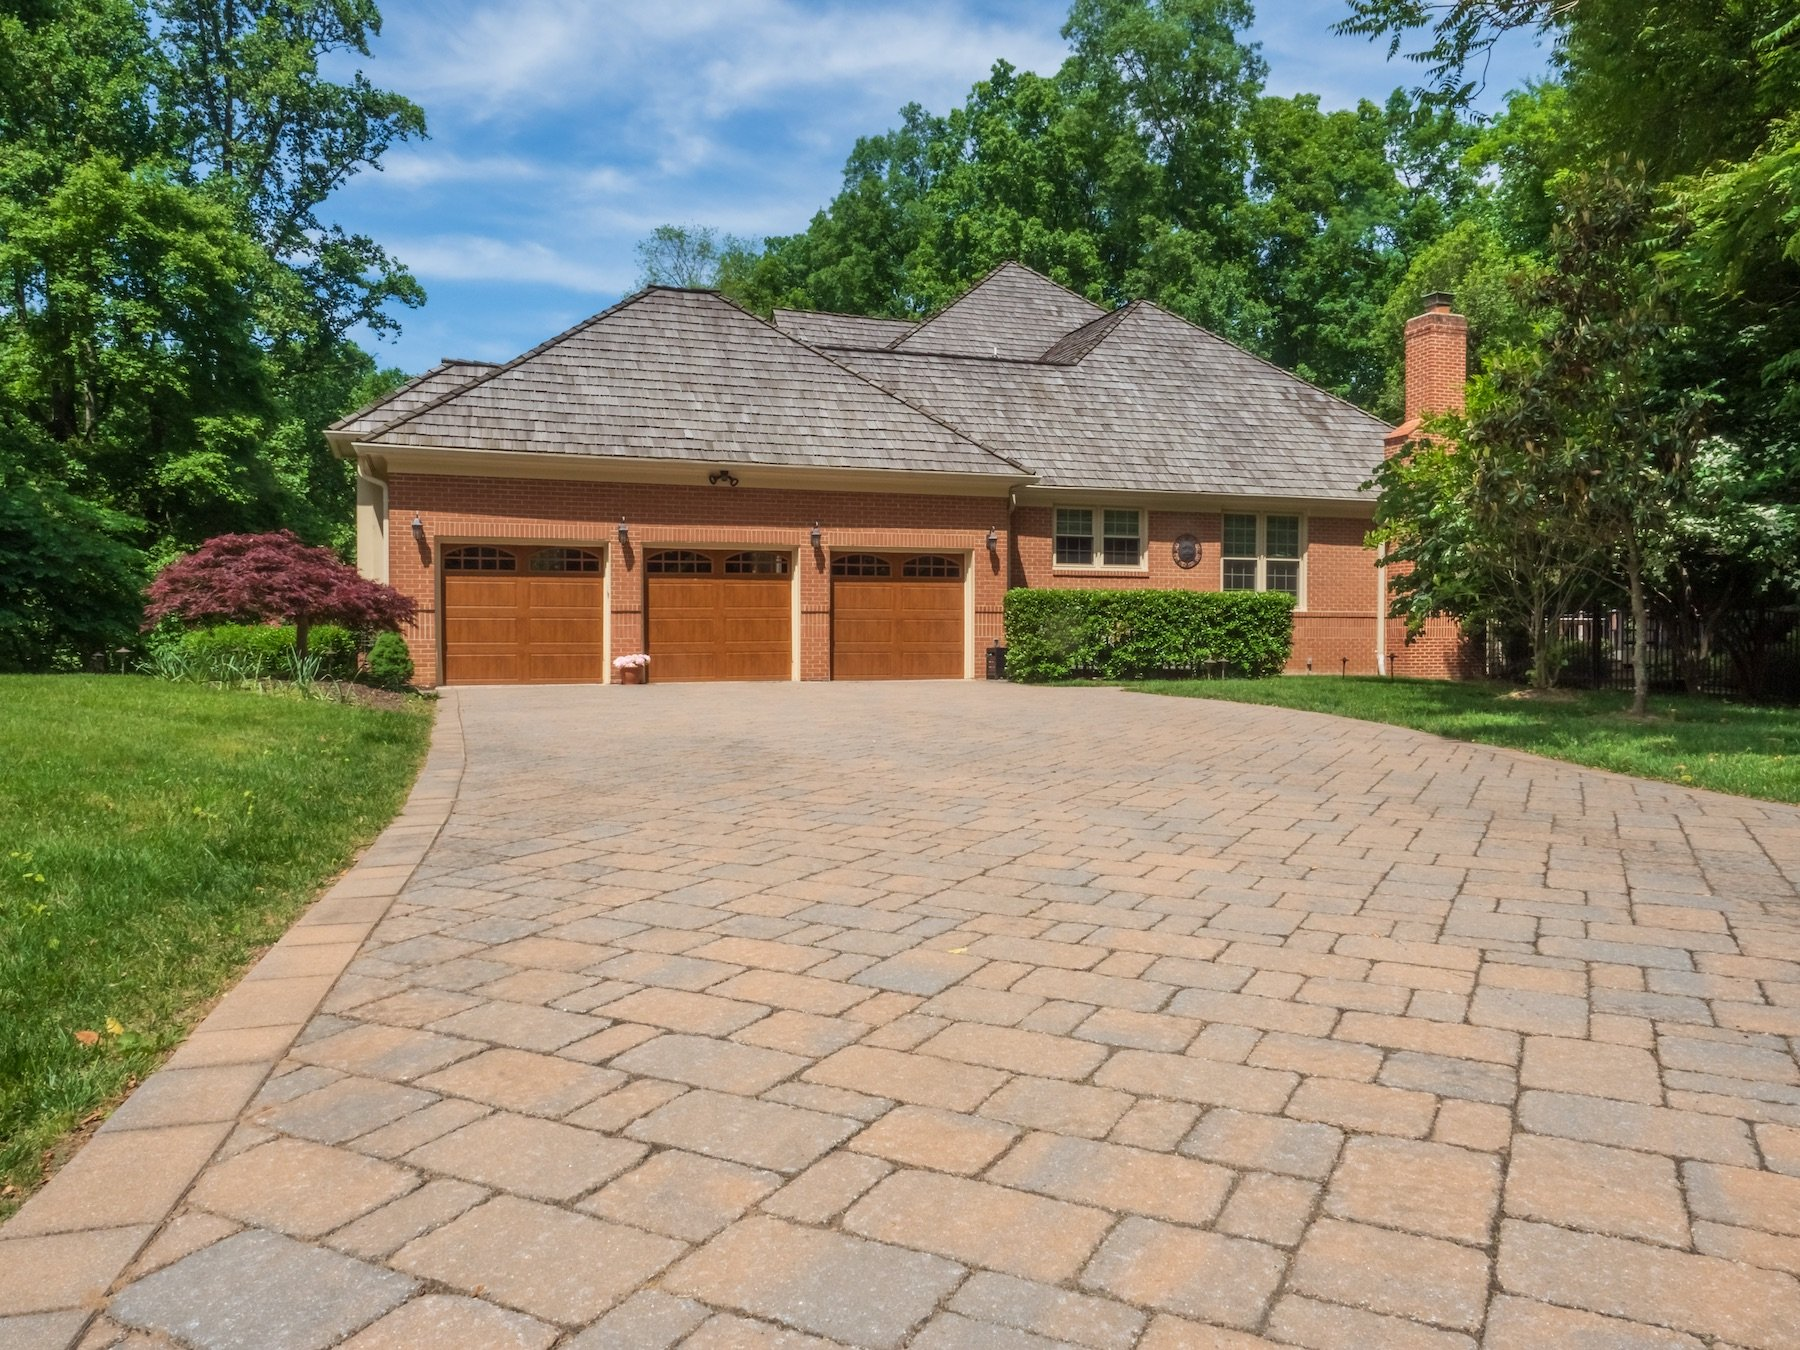 Great Falls, VA Hardscaping Case Study: A Welcoming Paver Driveway